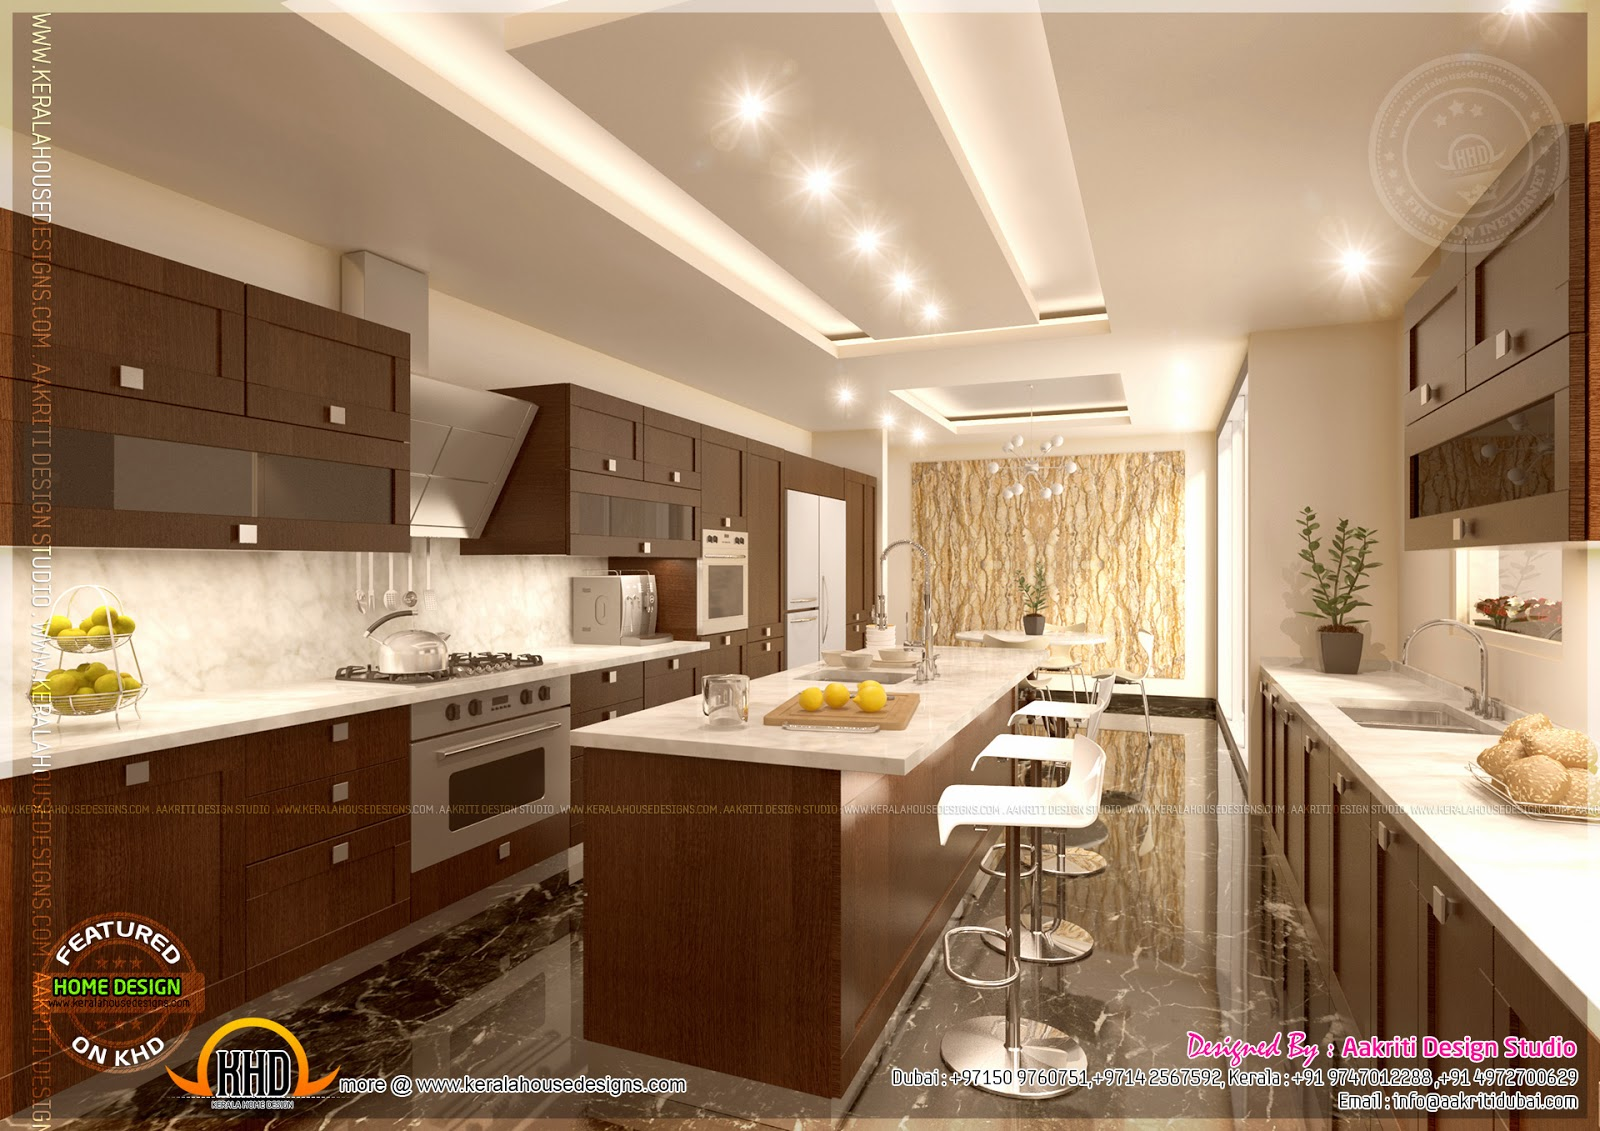 Kitchen designs by aakriti design studio kerala home for House kitchen design photos